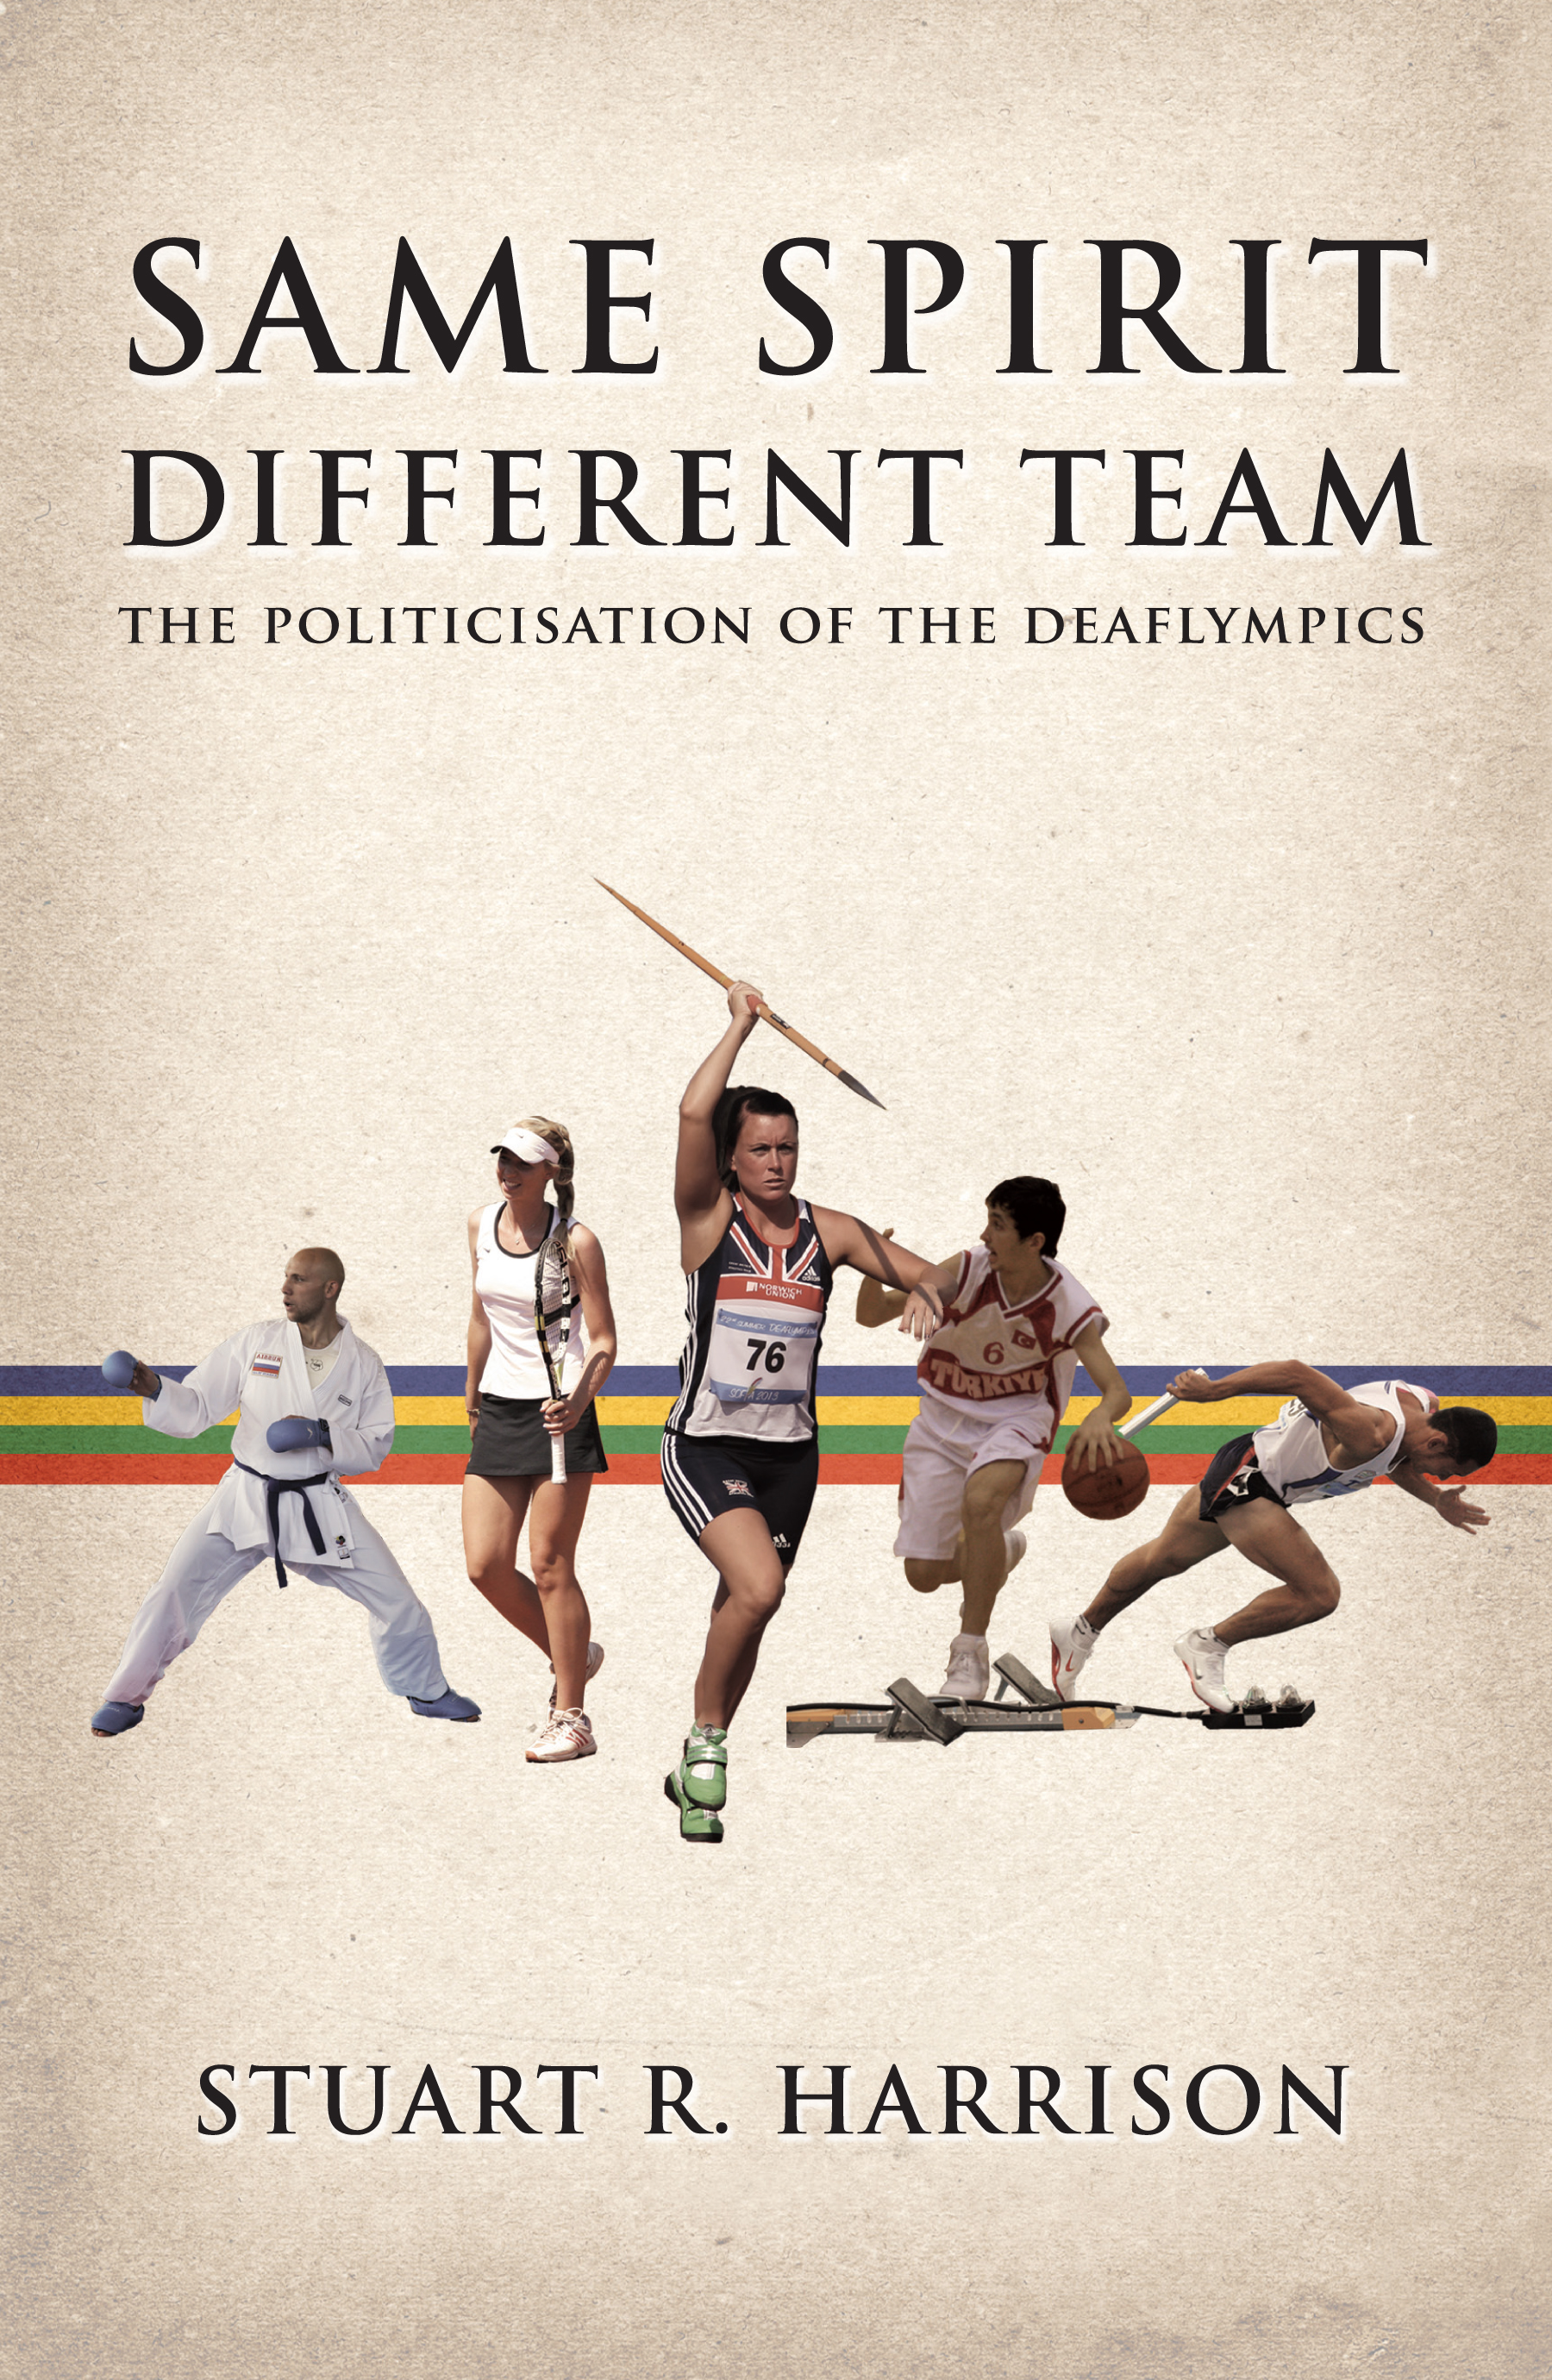 team spirit in sports essay Encouraging one another in a team gives additional strength to achieve the goal   sports, the significant rise in the performance of the indian cricket team after.